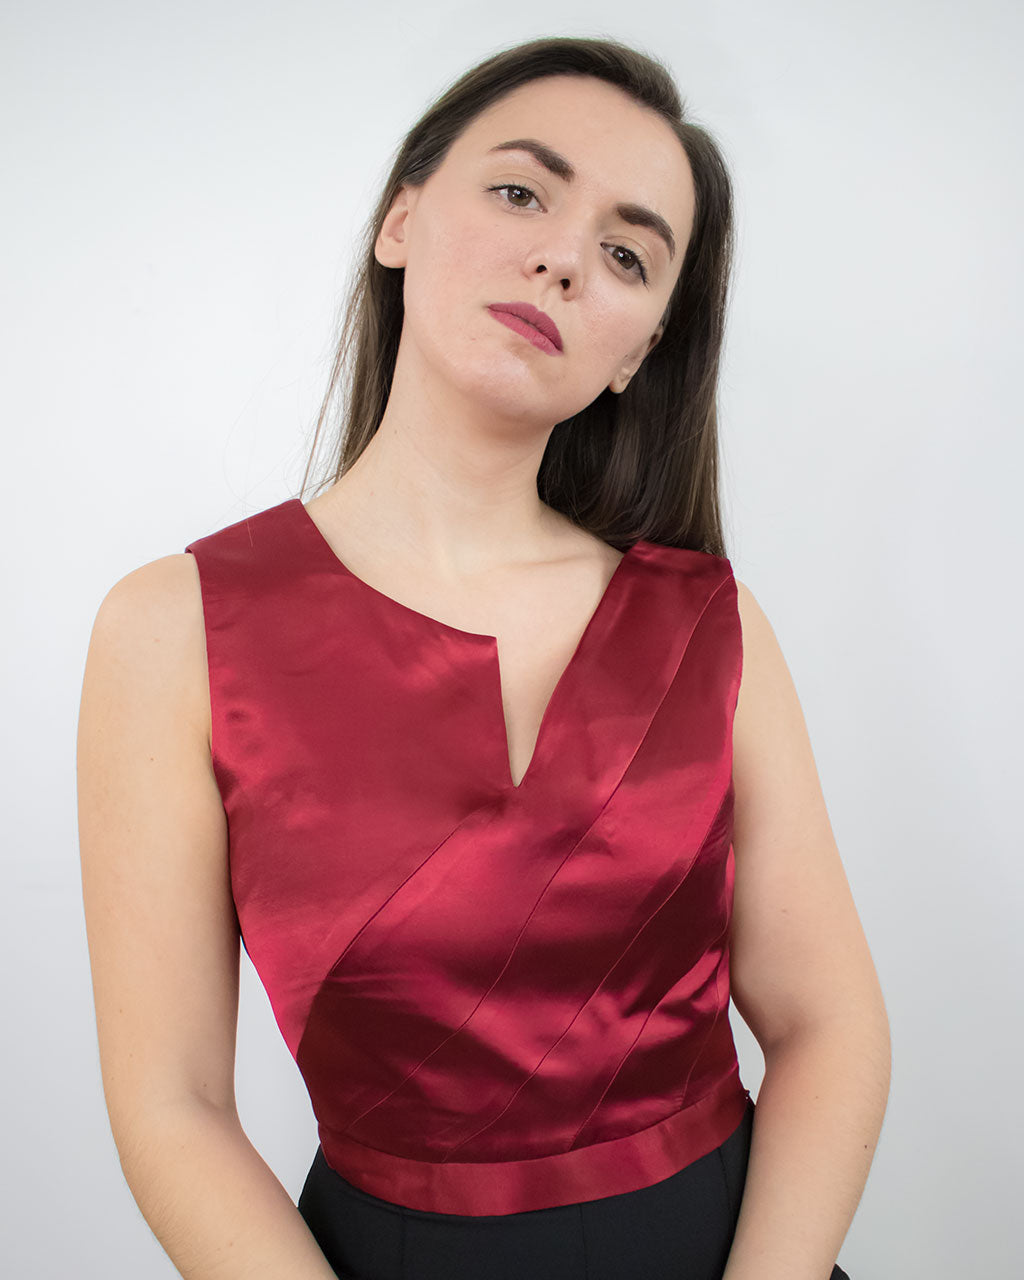 Eirene Red Satin Crop Top